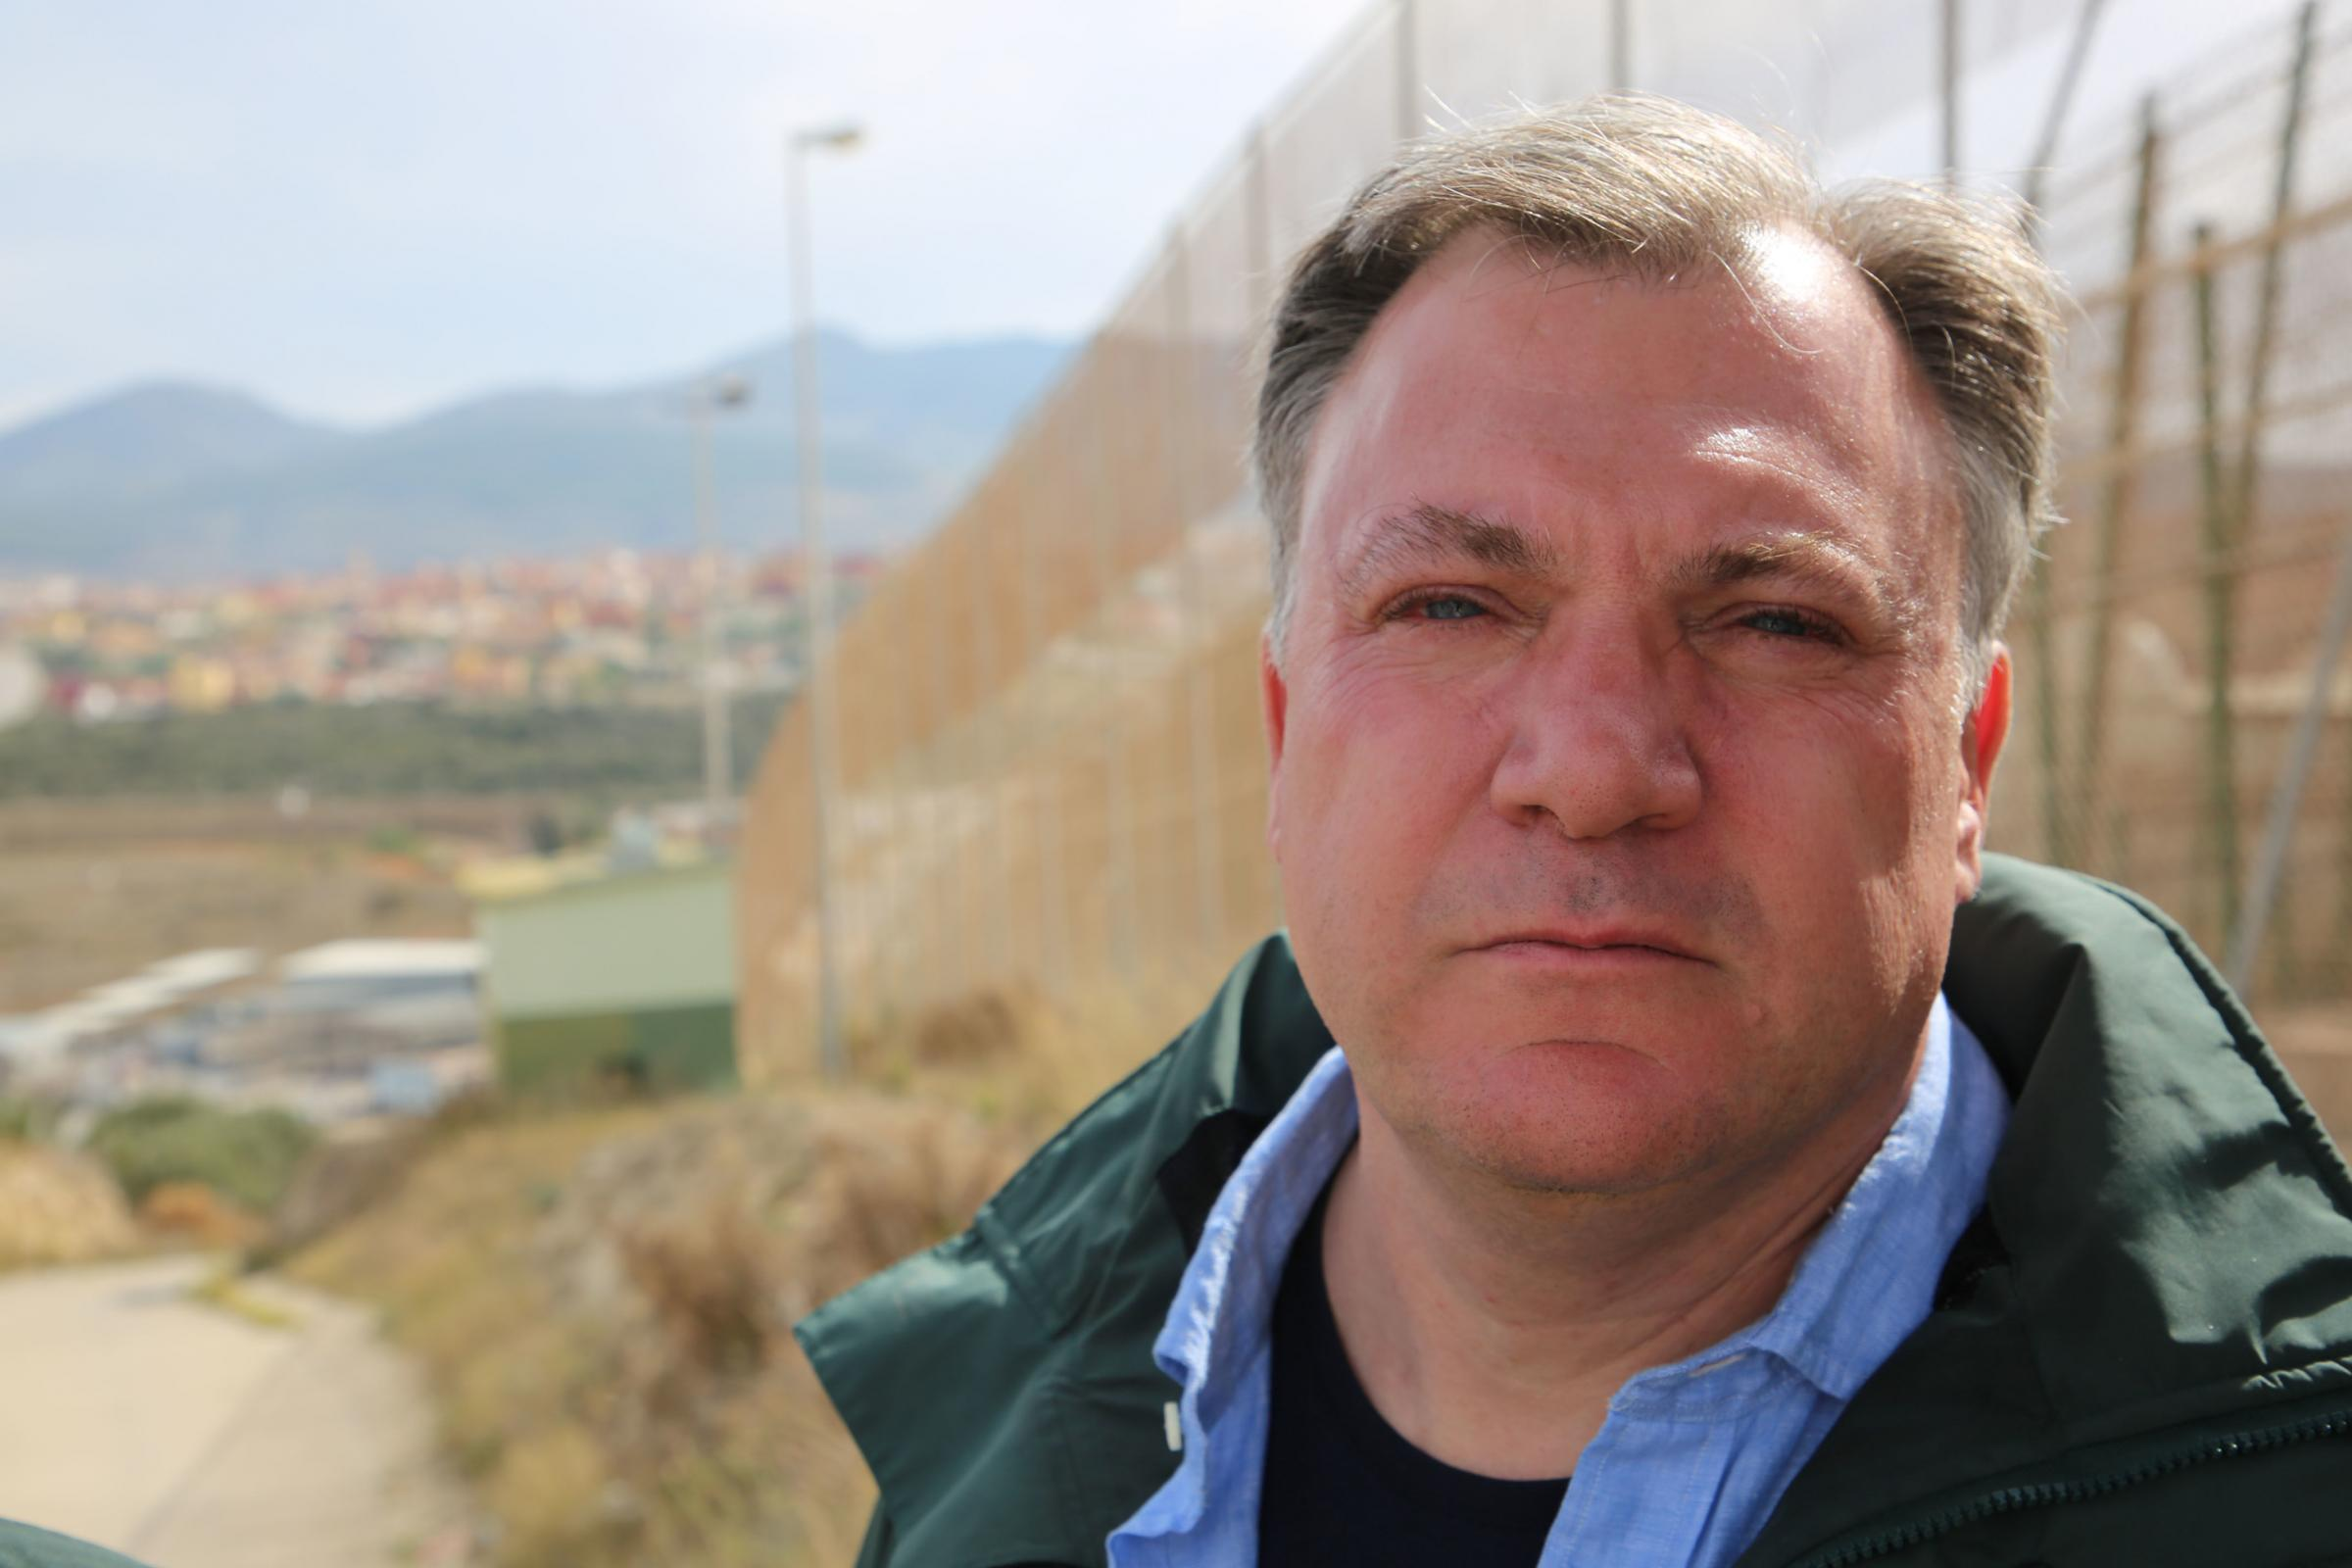 Ed Balls on his new TV show